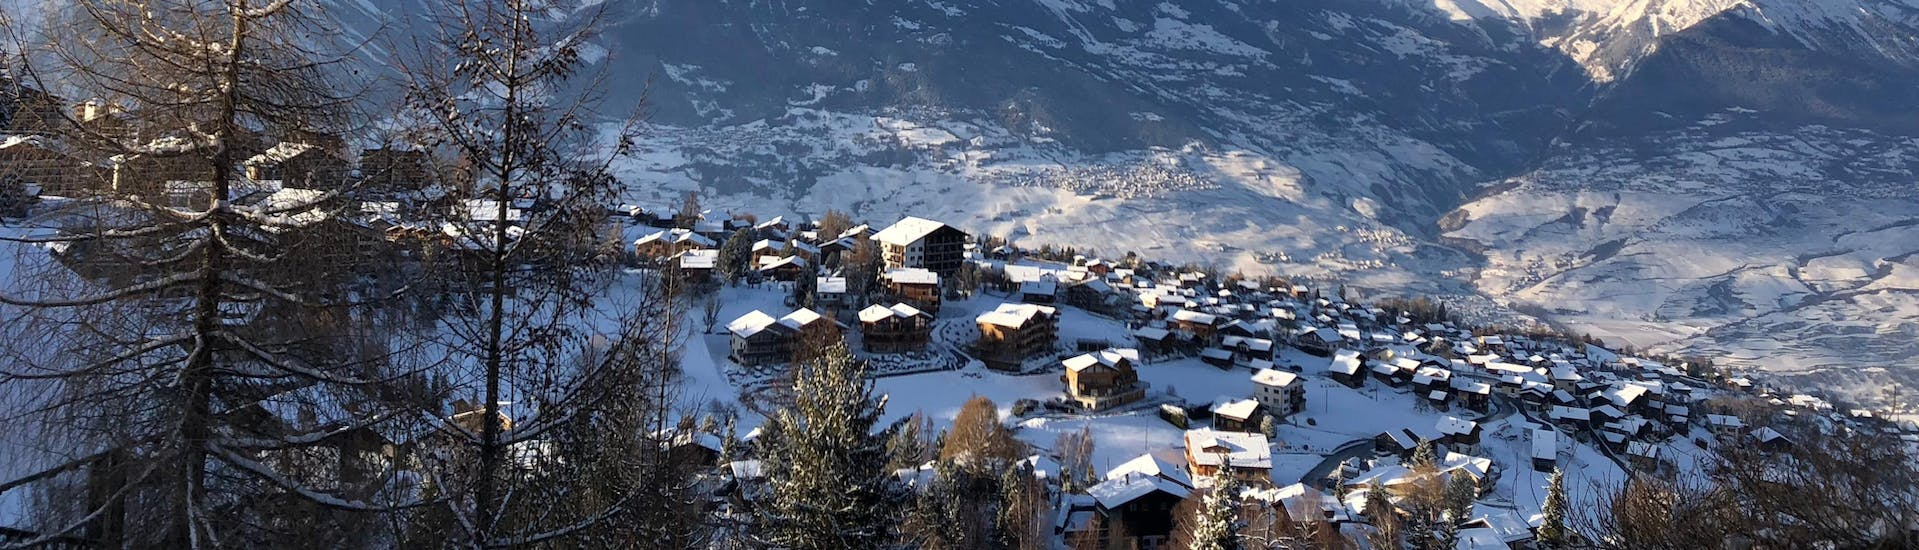 An aereal view of the ski resort of Nendaz-Siviez, a popular destination in the French-speaking part of Switzerland, where visitors can book ski lessons with one of the local ski schools.